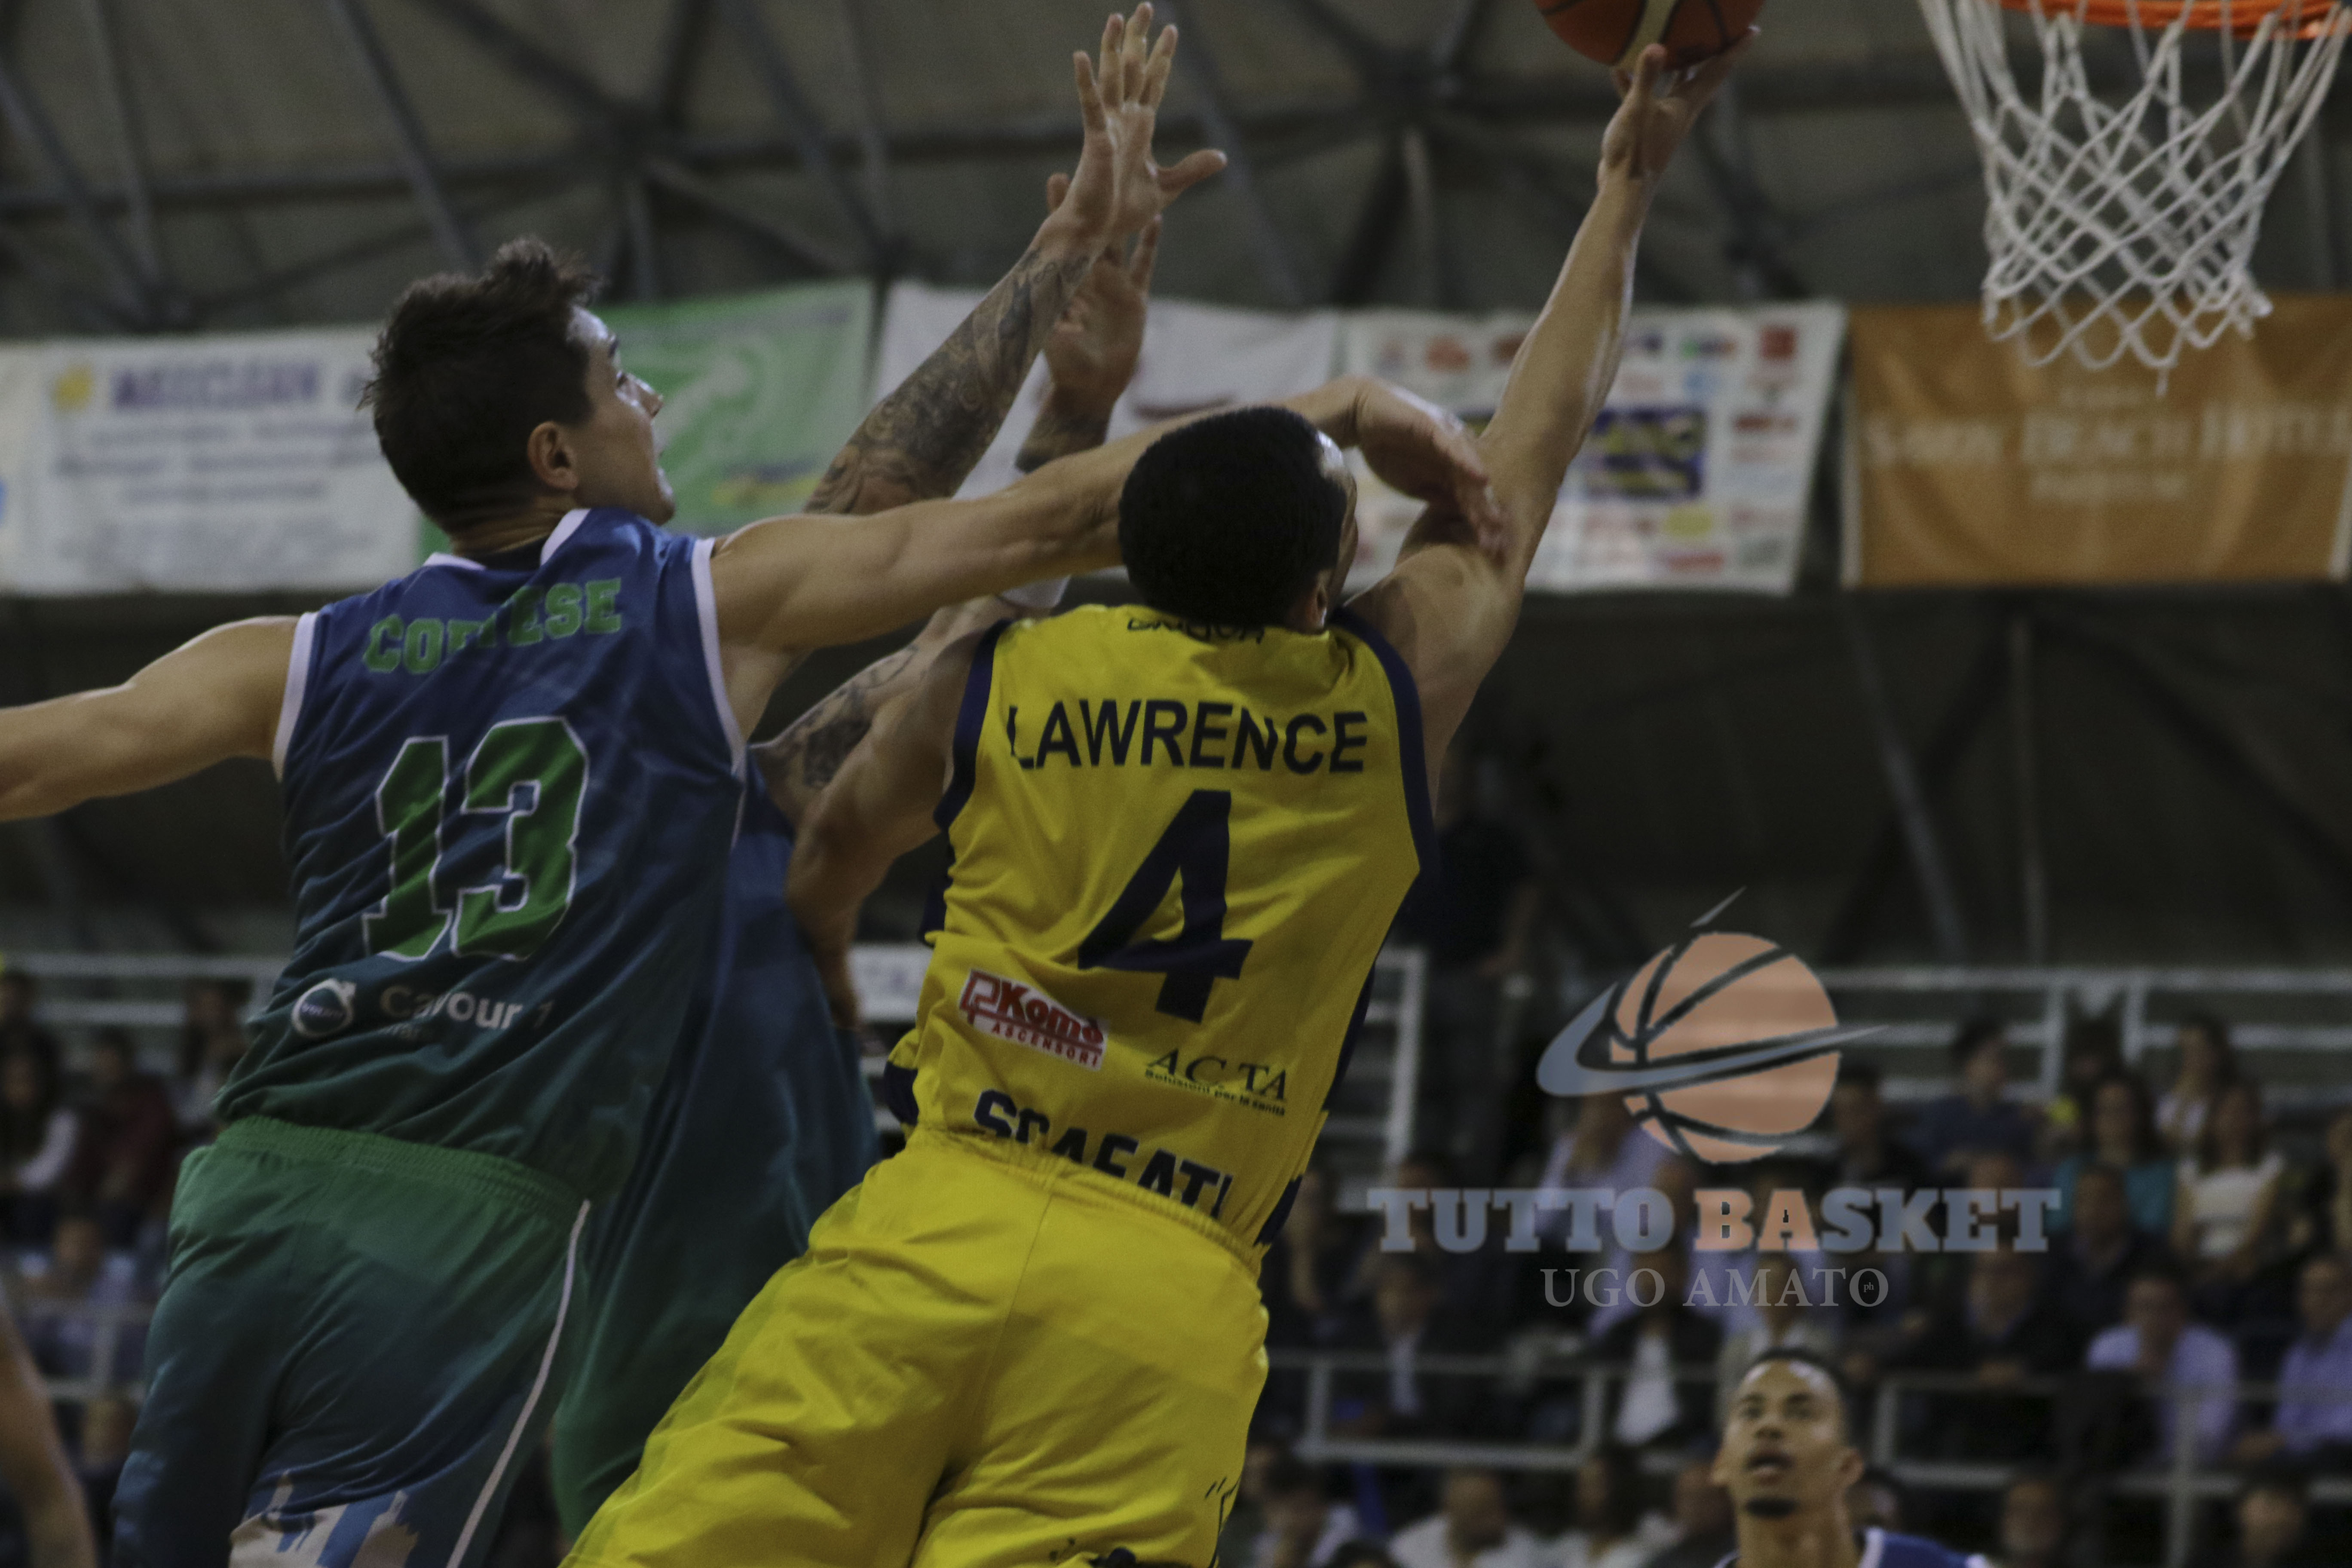 lawrence 2